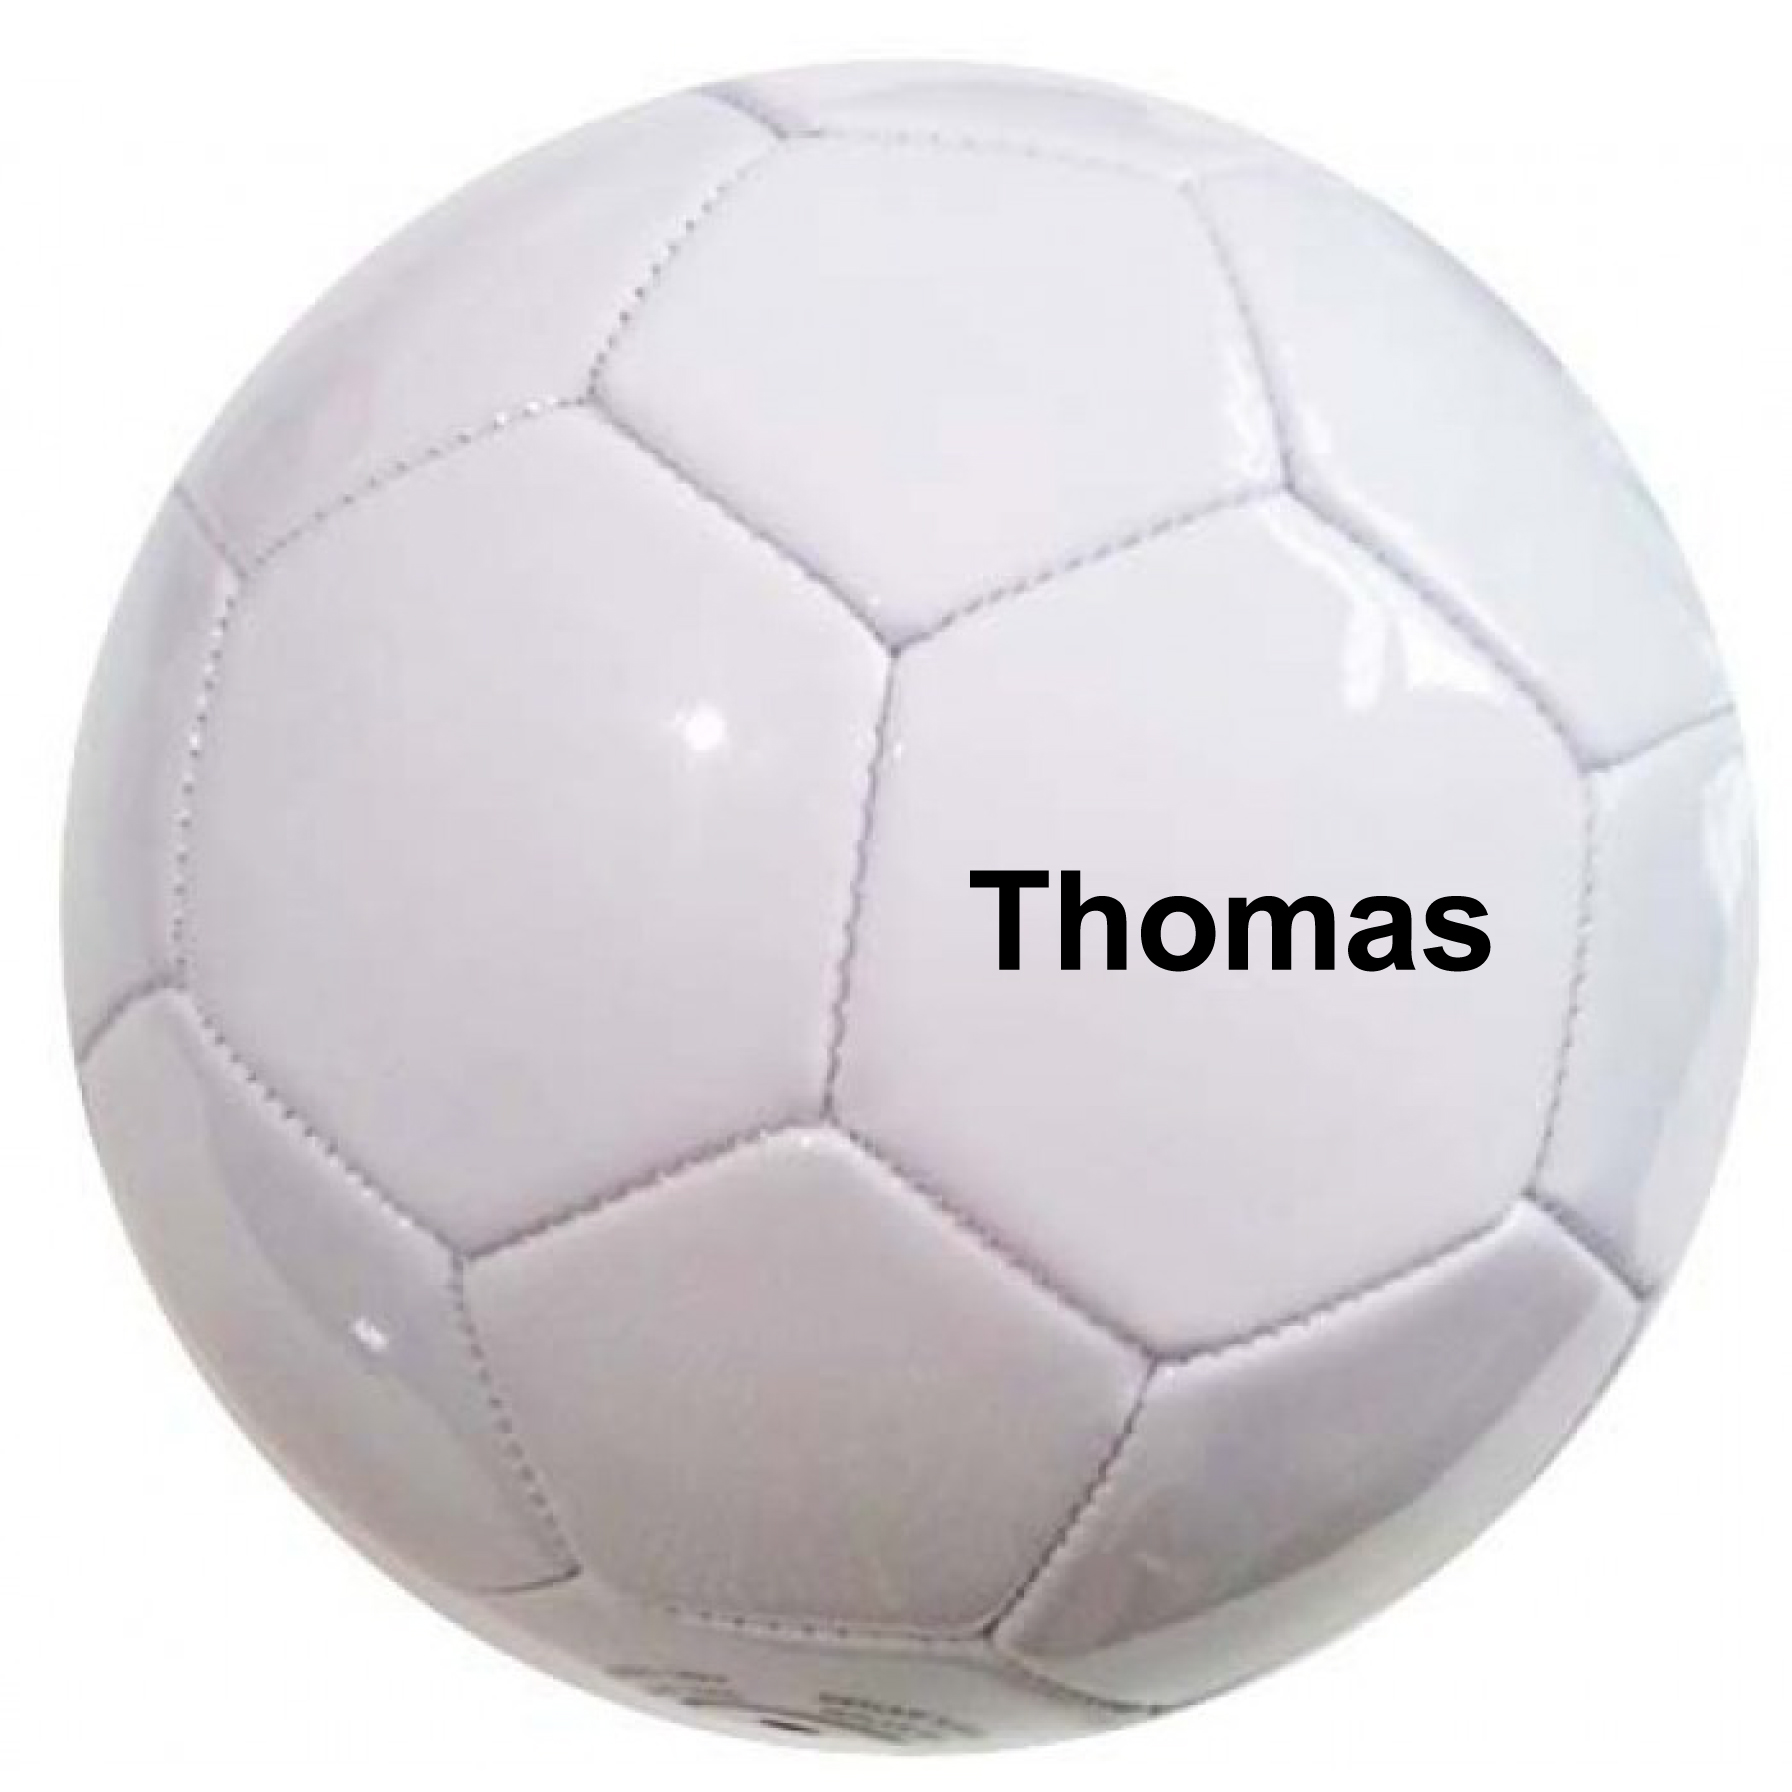 https://www.best4sportsballs.com/pub/media/catalog/product/n/o/non-branbded_white_football_personalied.jpg